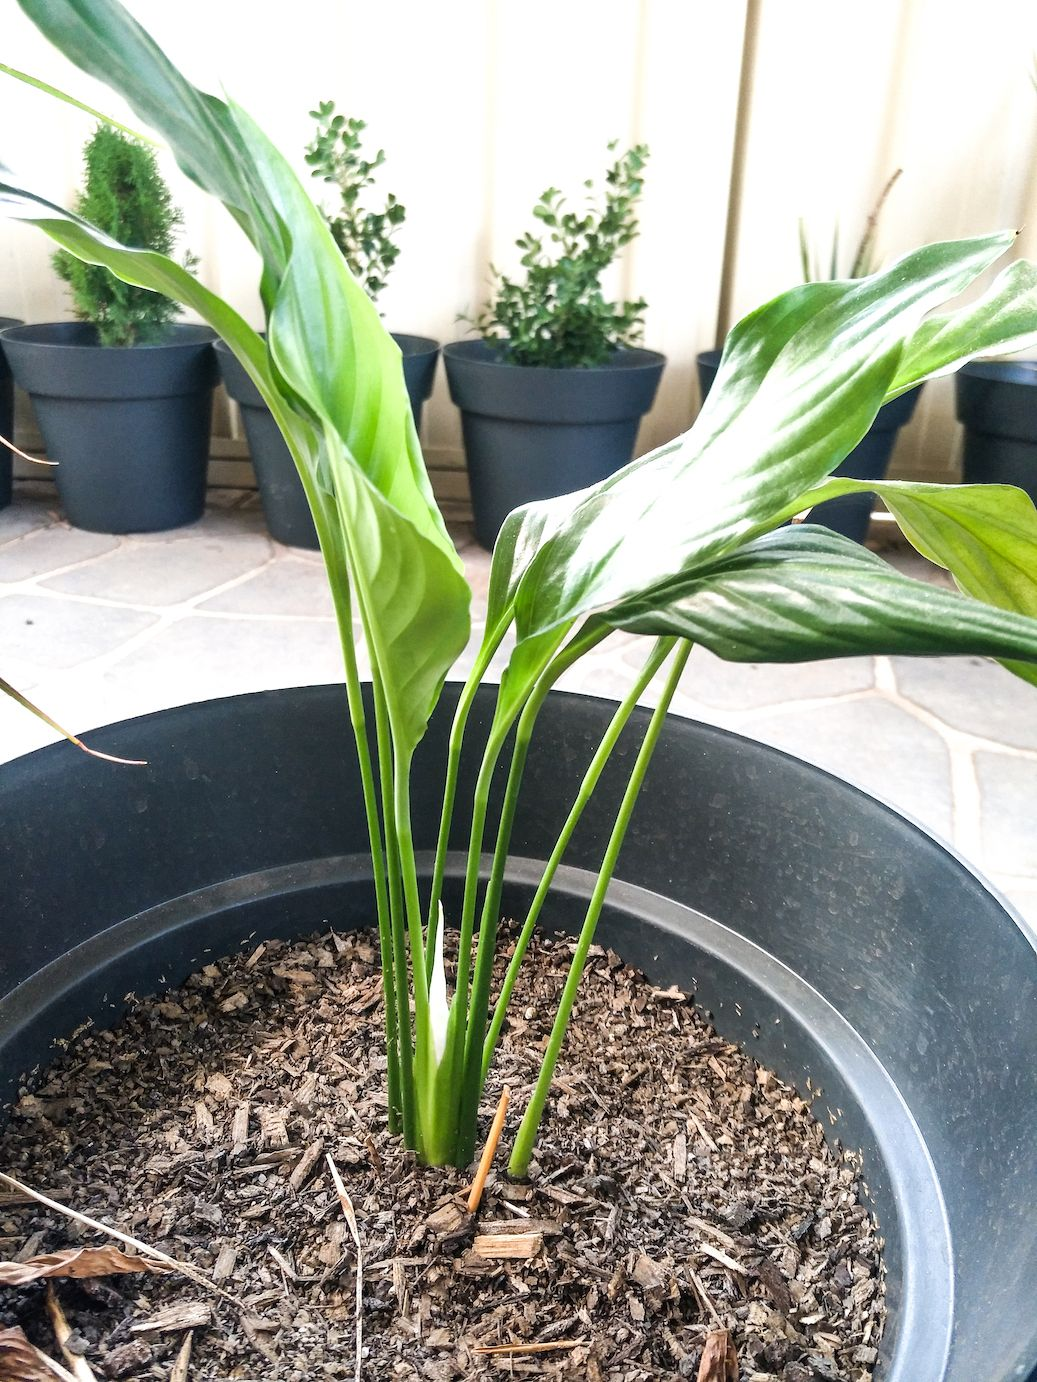 Easy Ways To Grow House Plants From Cuttings Garden Lily Plants Peace Lily Plant Plants